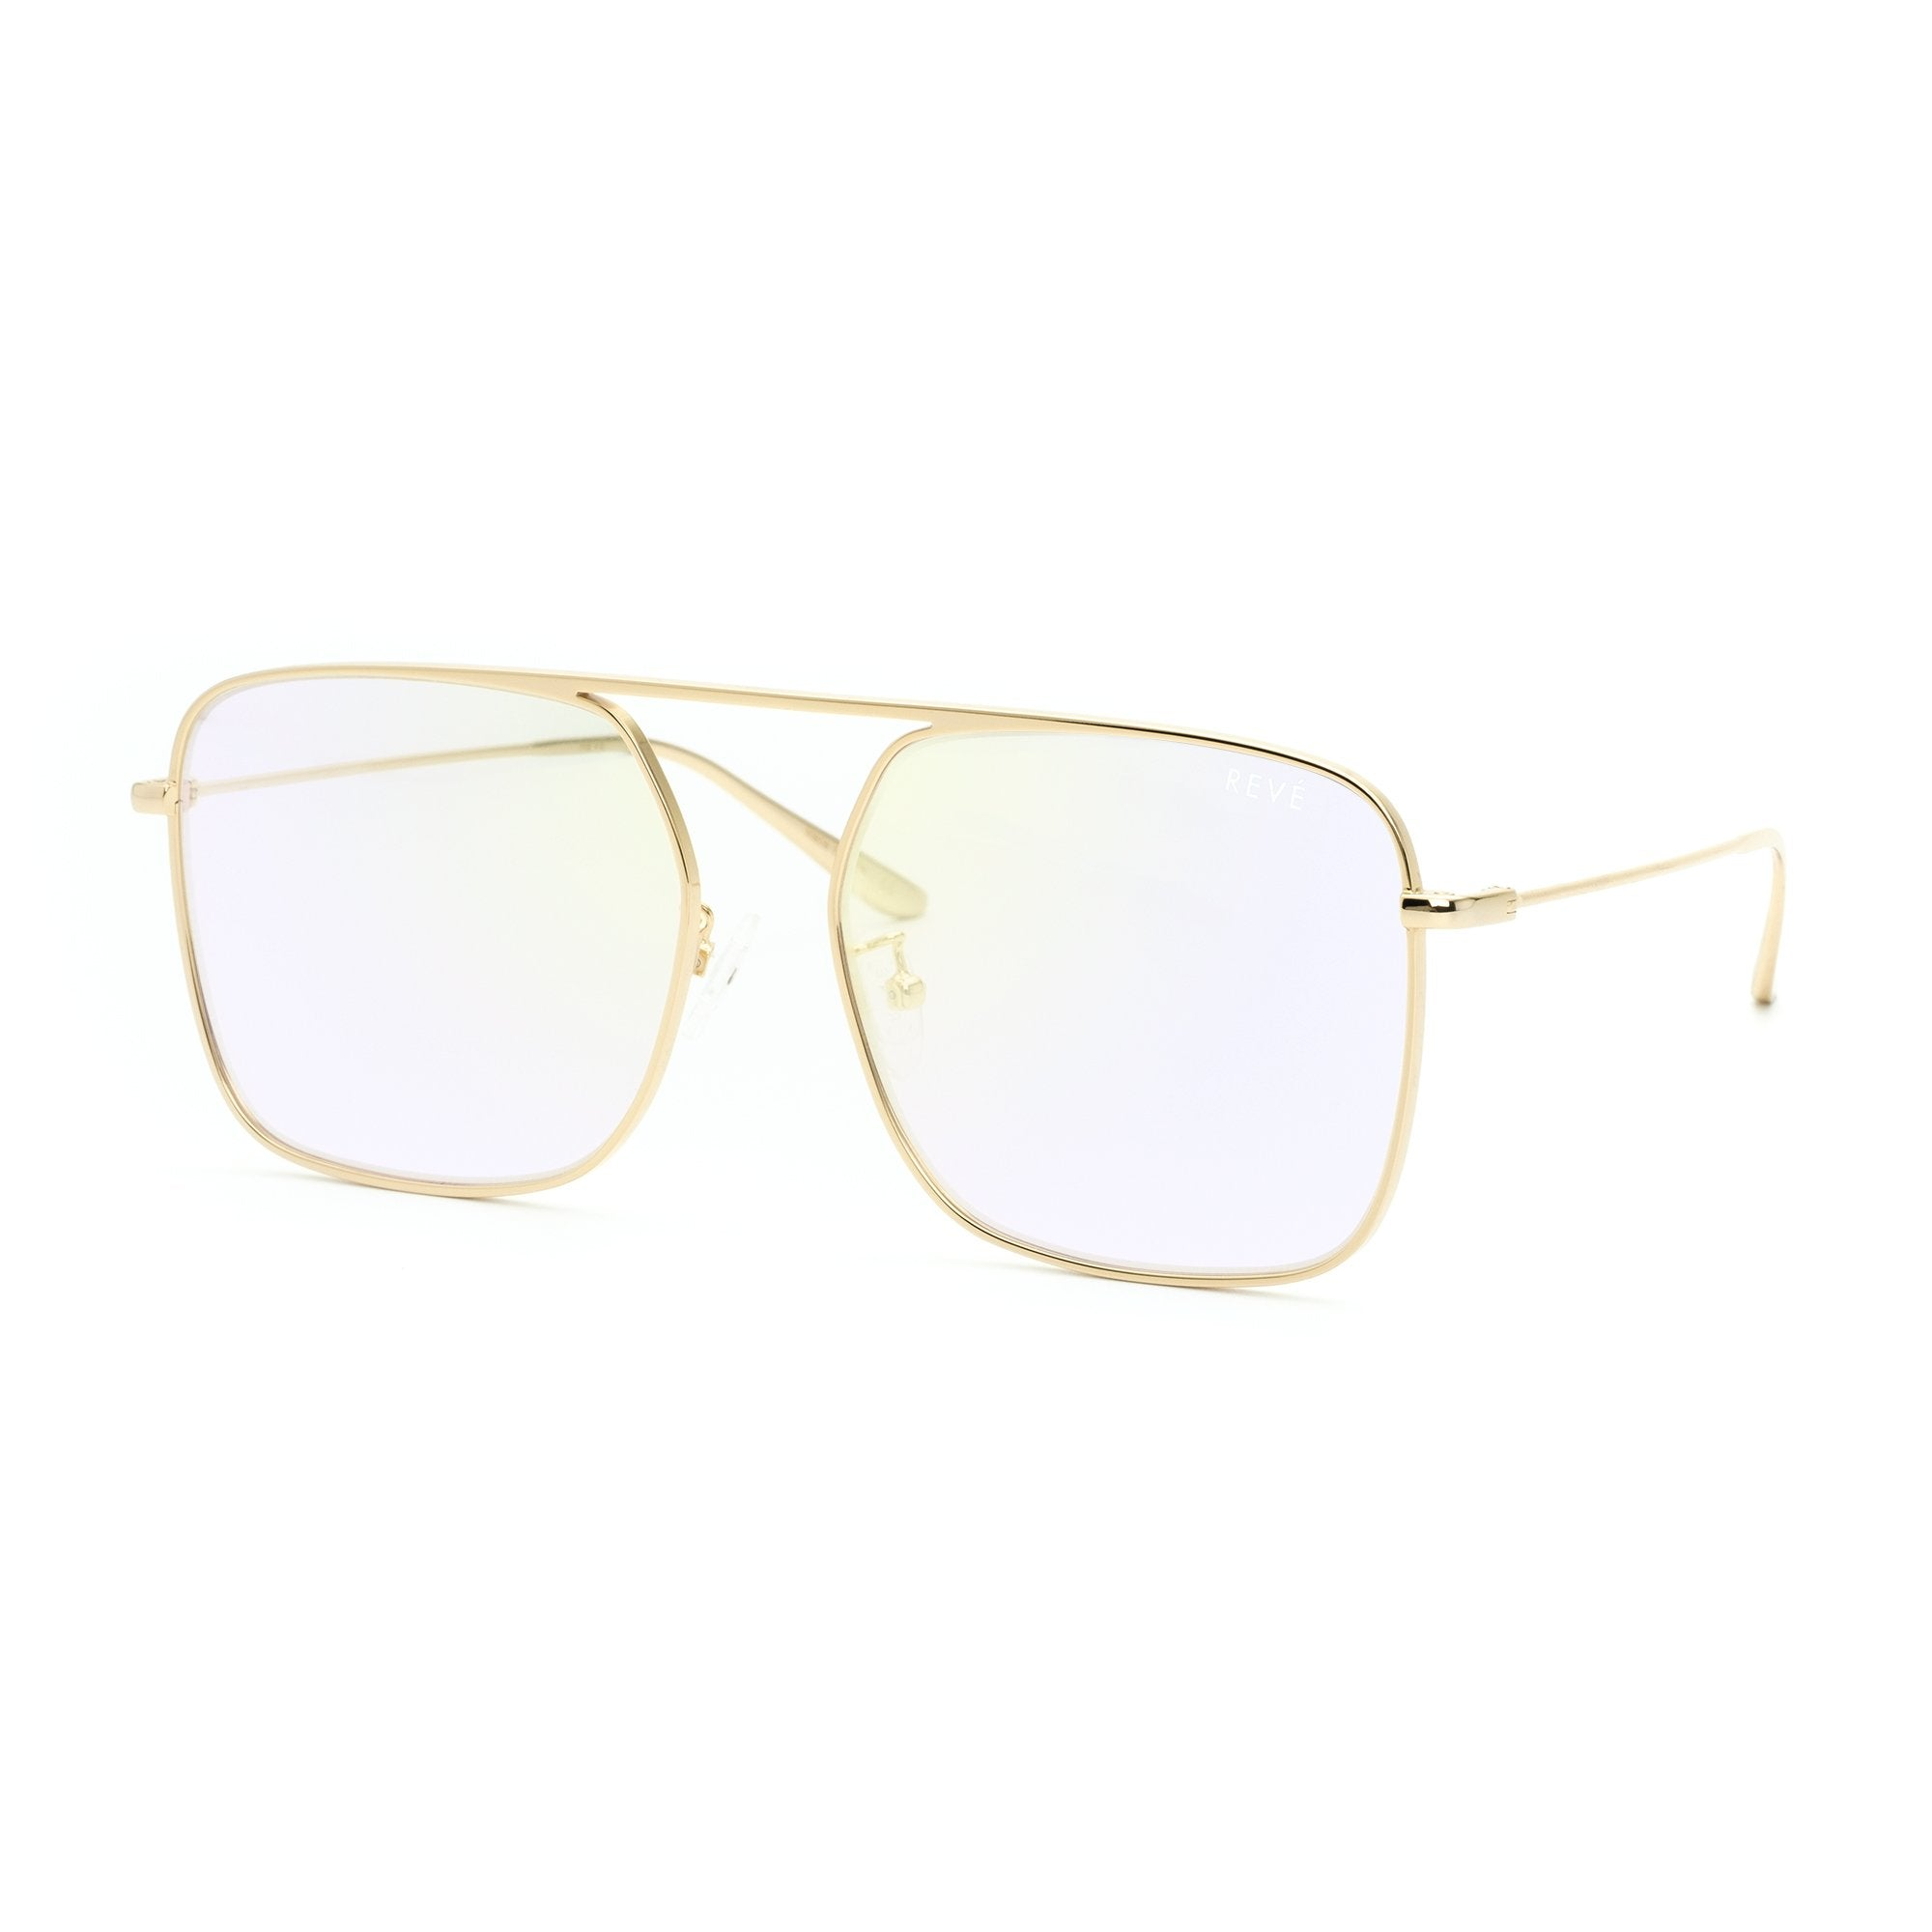 REVE by RENE BPM square aviator sunglasses | Unicorn sunglasses